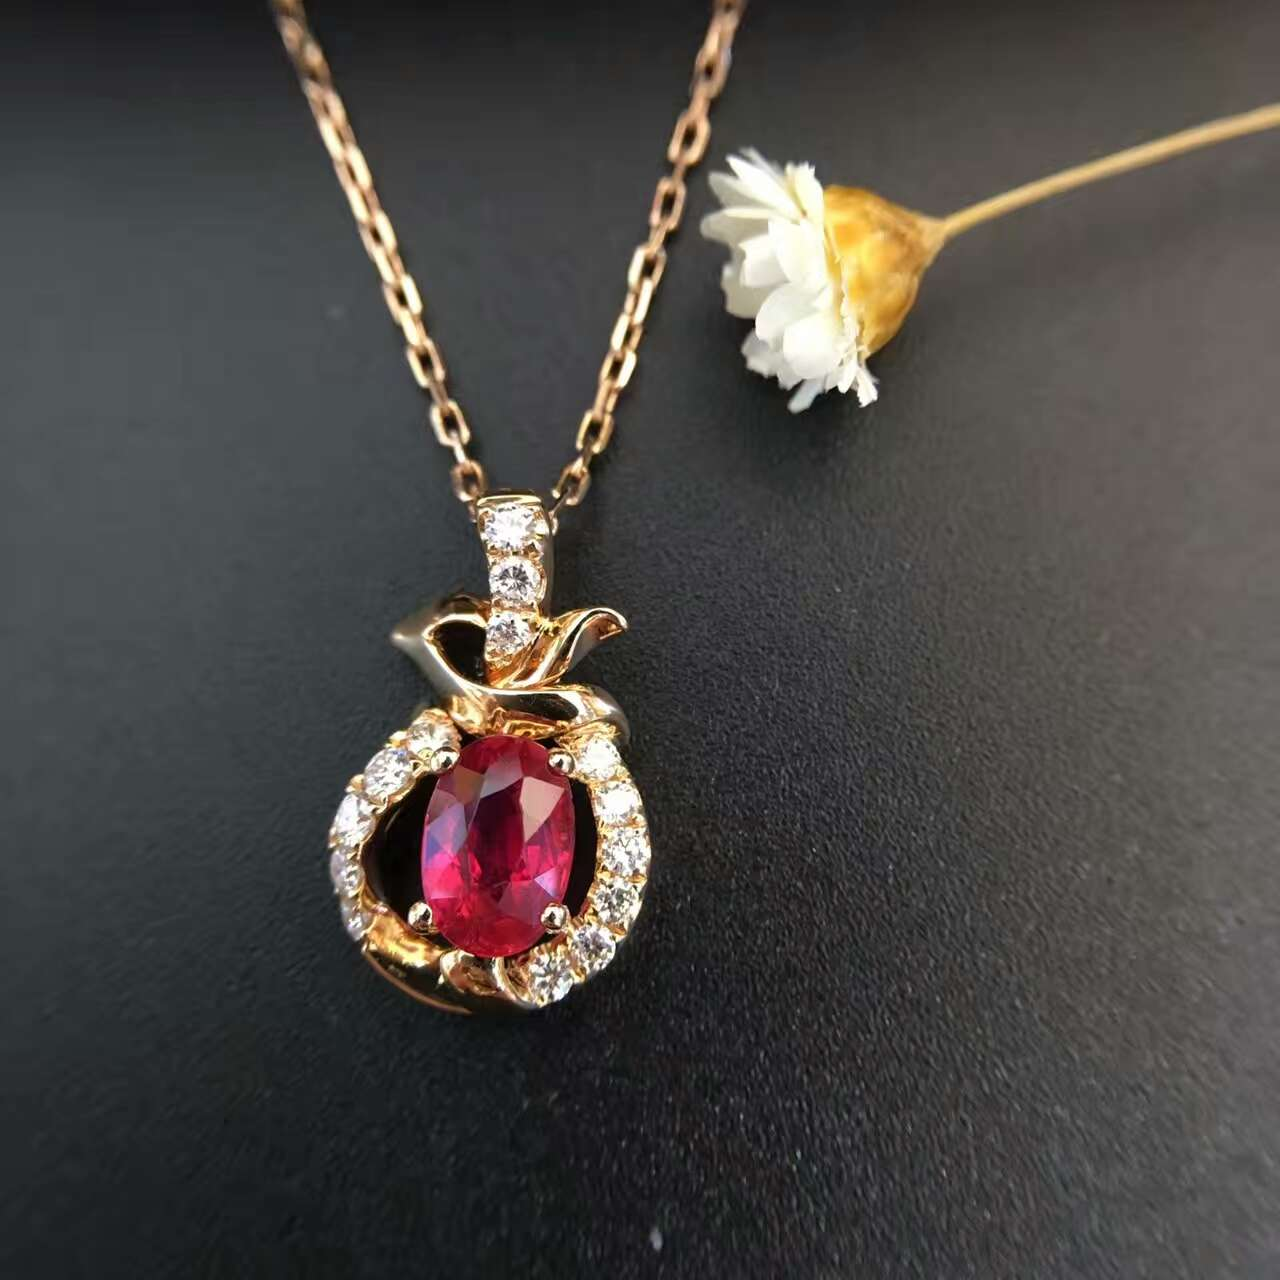 18K Gold 0 496ct Natural Ruby and Pendant font b Necklace b font 0 130ct font